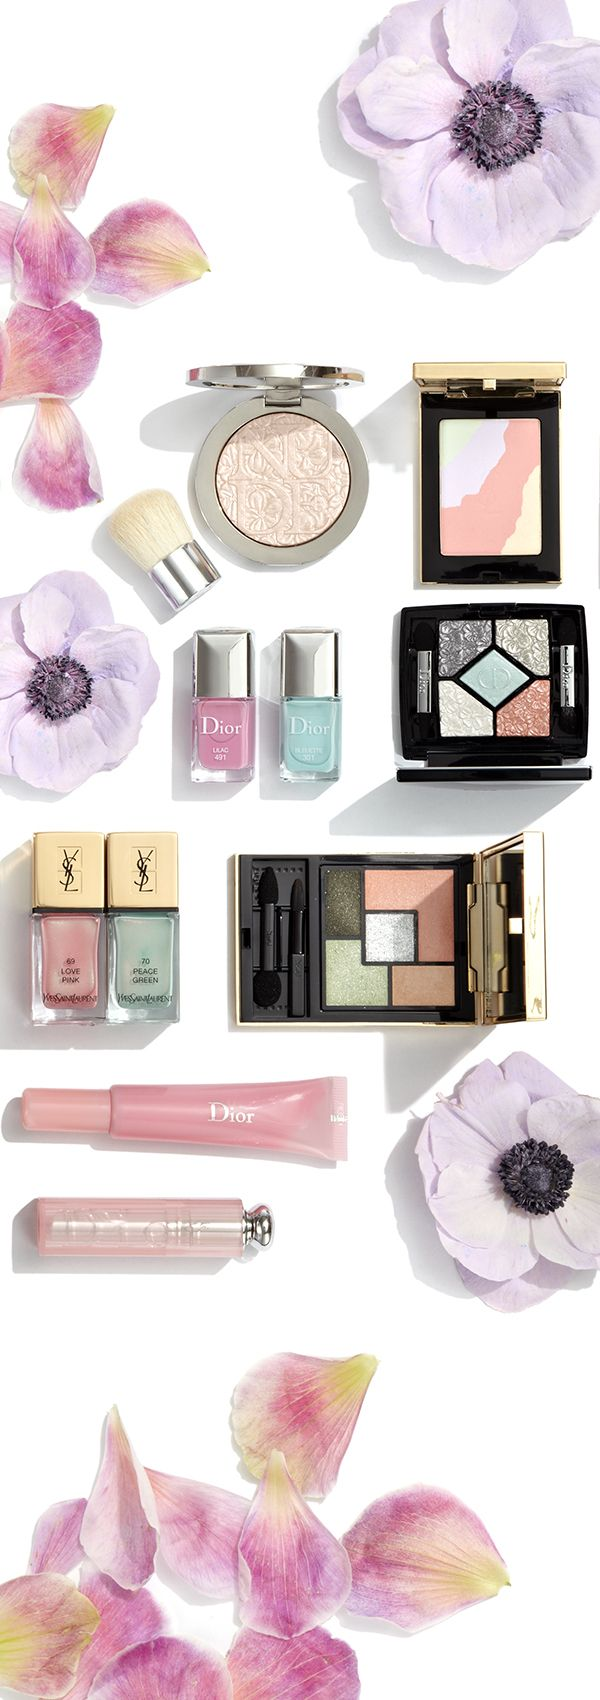 We're catching a little spring fever with these lovely colors from #Dior #YvesSaintLaurent and more #SaksBeauty